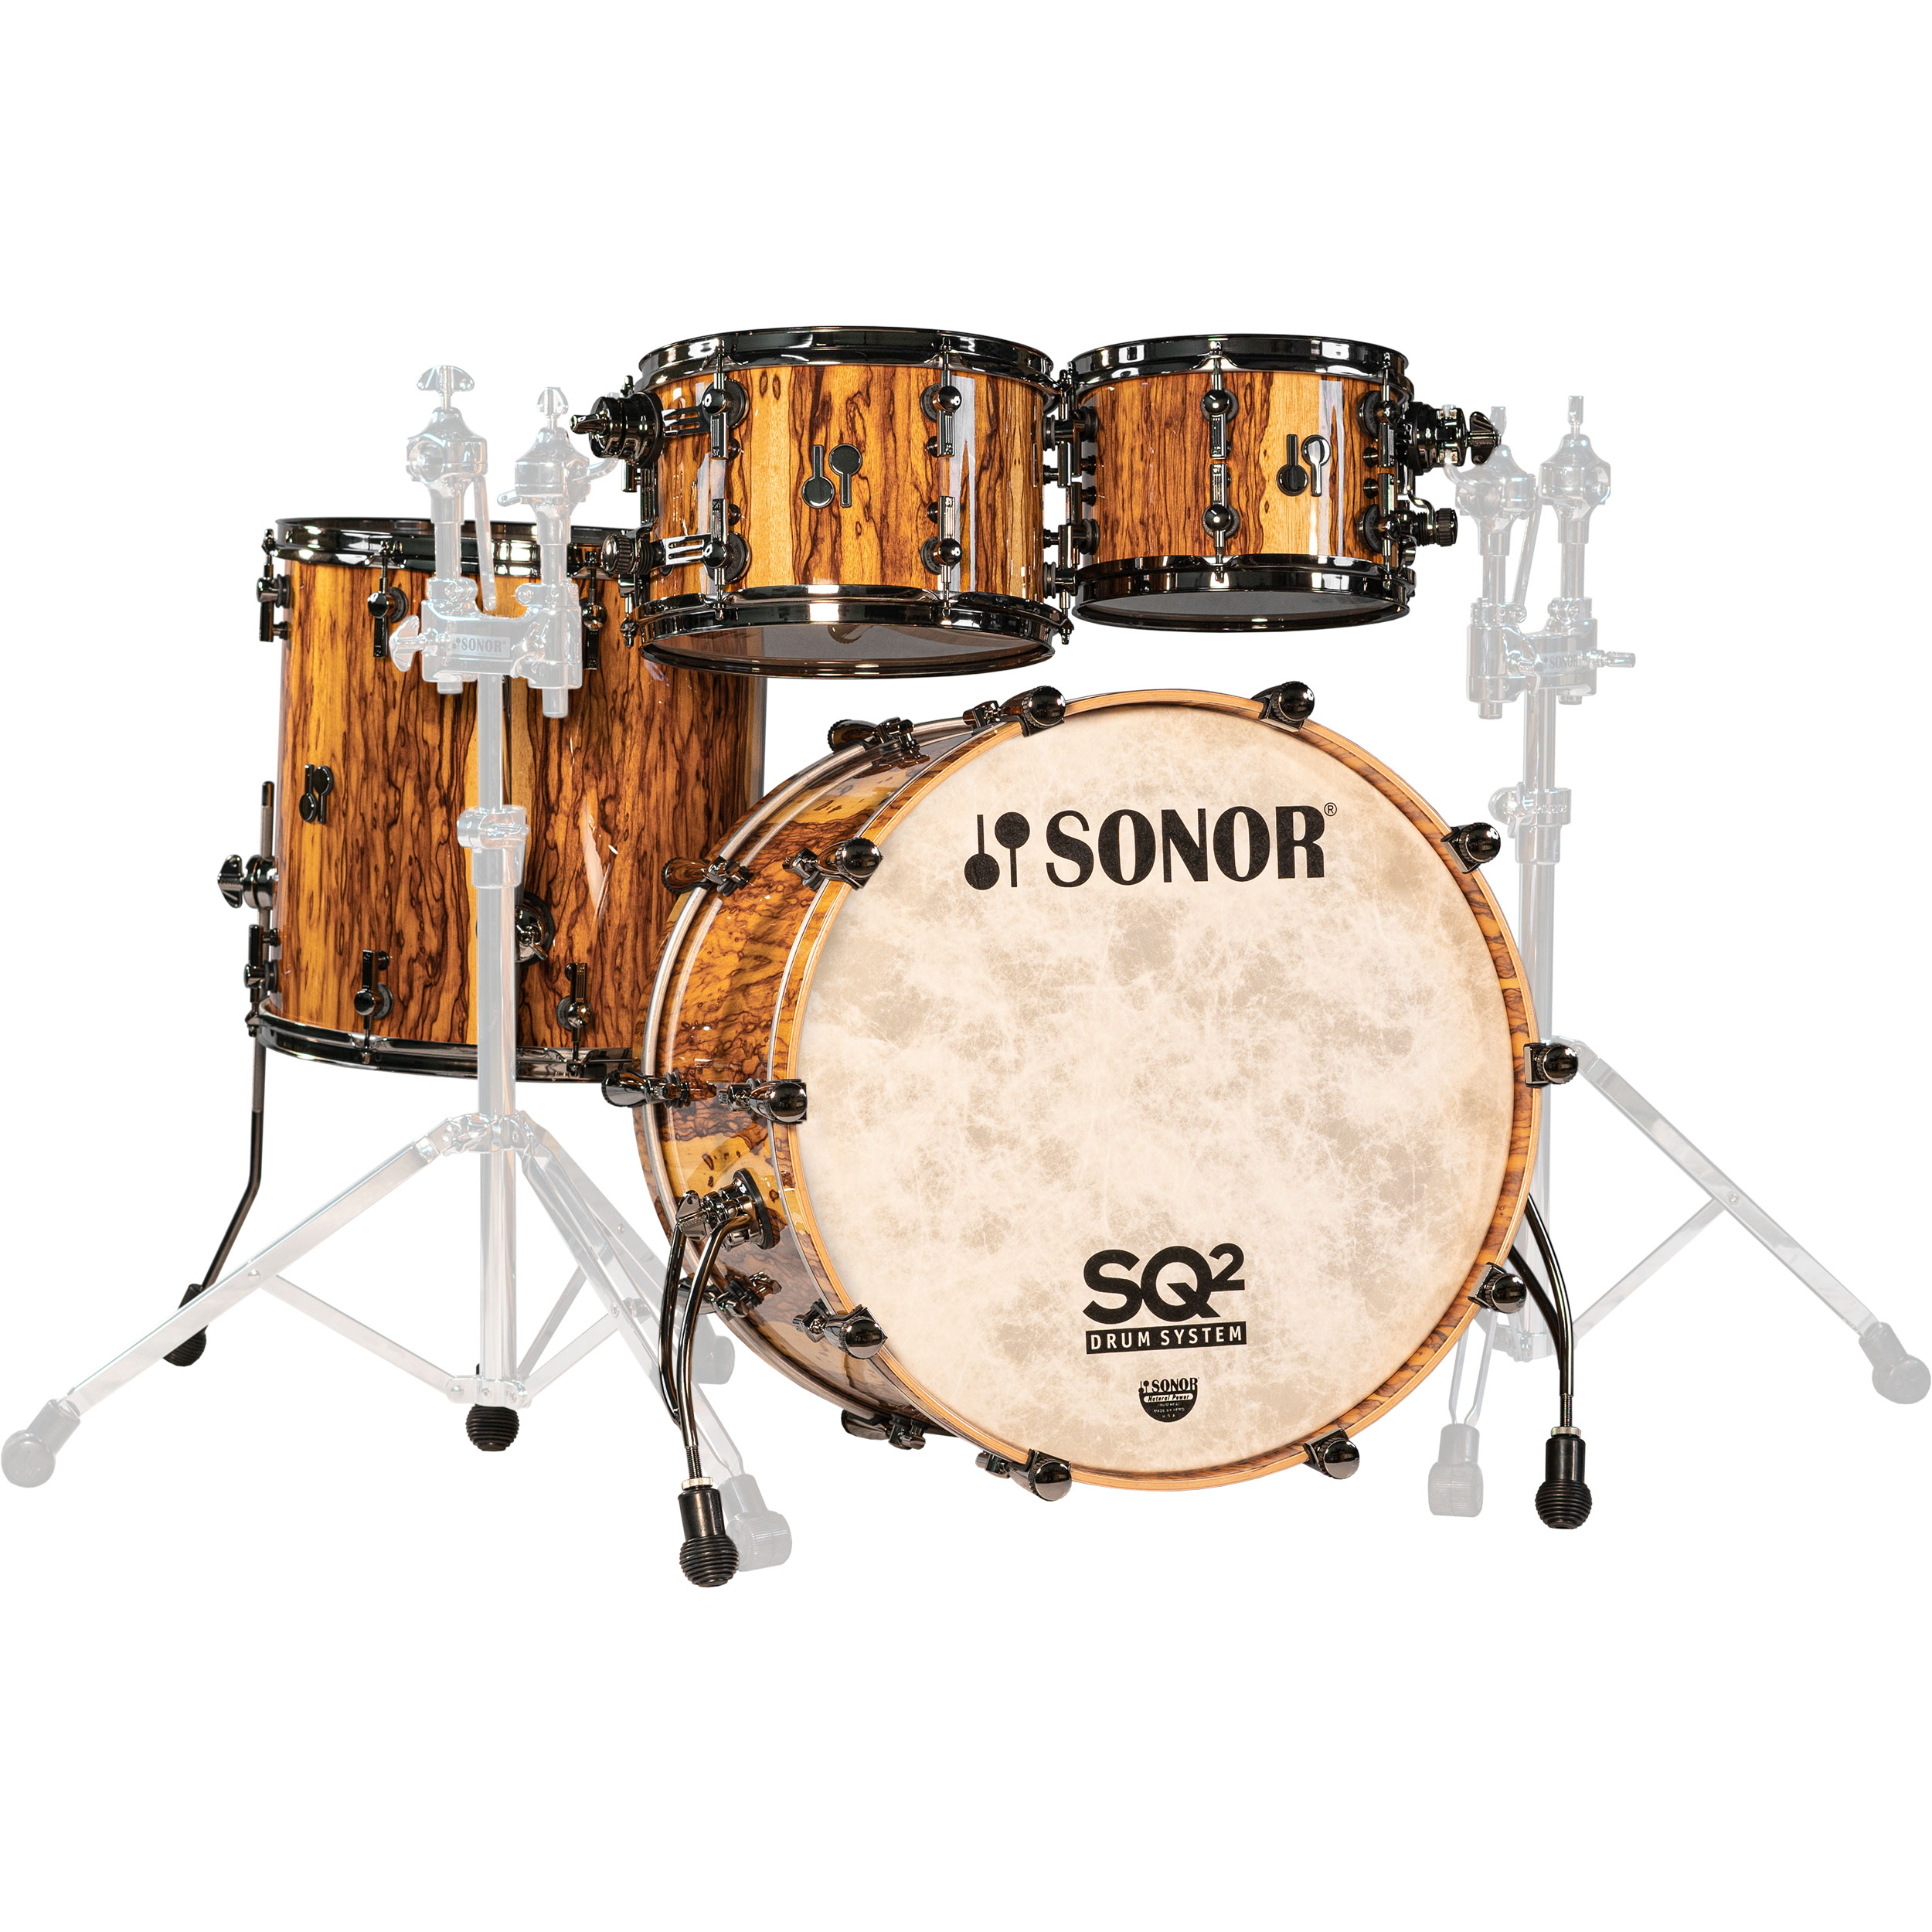 "Sonor SQ2 Custom Vintage Maple 4-Piece Drum Set Shell Pack (22"" Bass, 10/12/16"" Toms) in African Marble with Black Chrome Hardware"